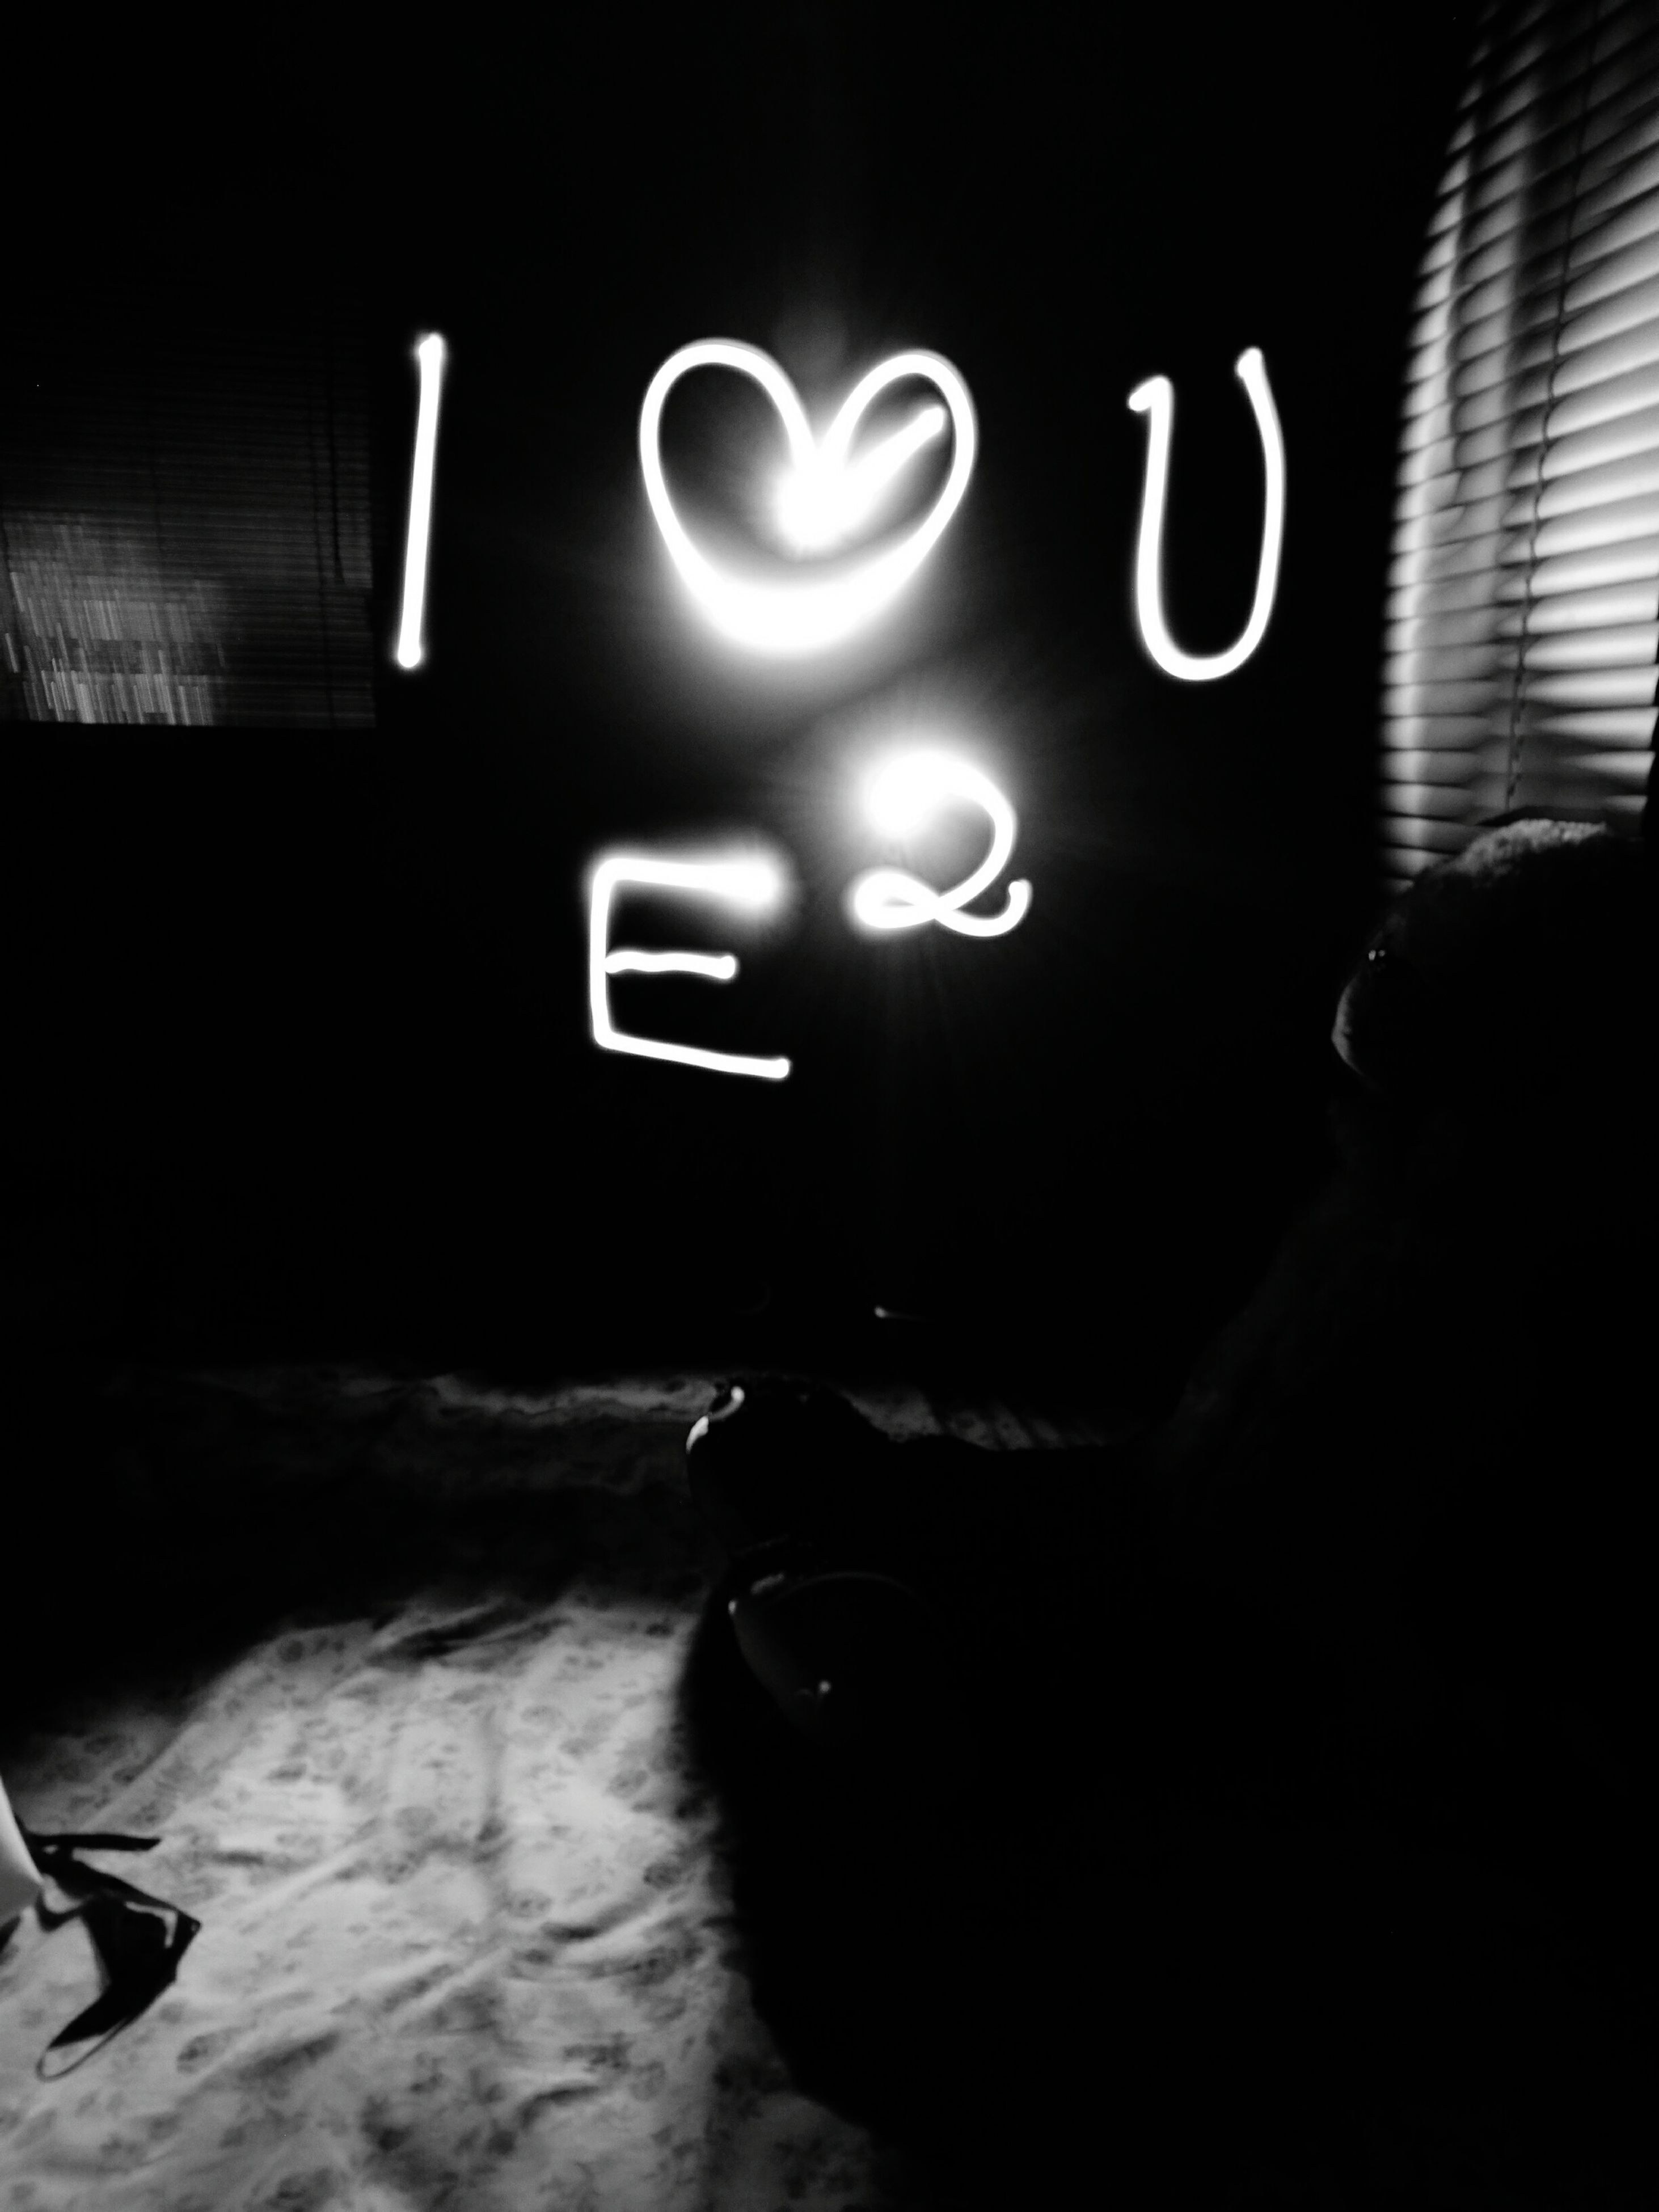 illuminated, real people, heart shape, indoors, night, one person, close-up, men